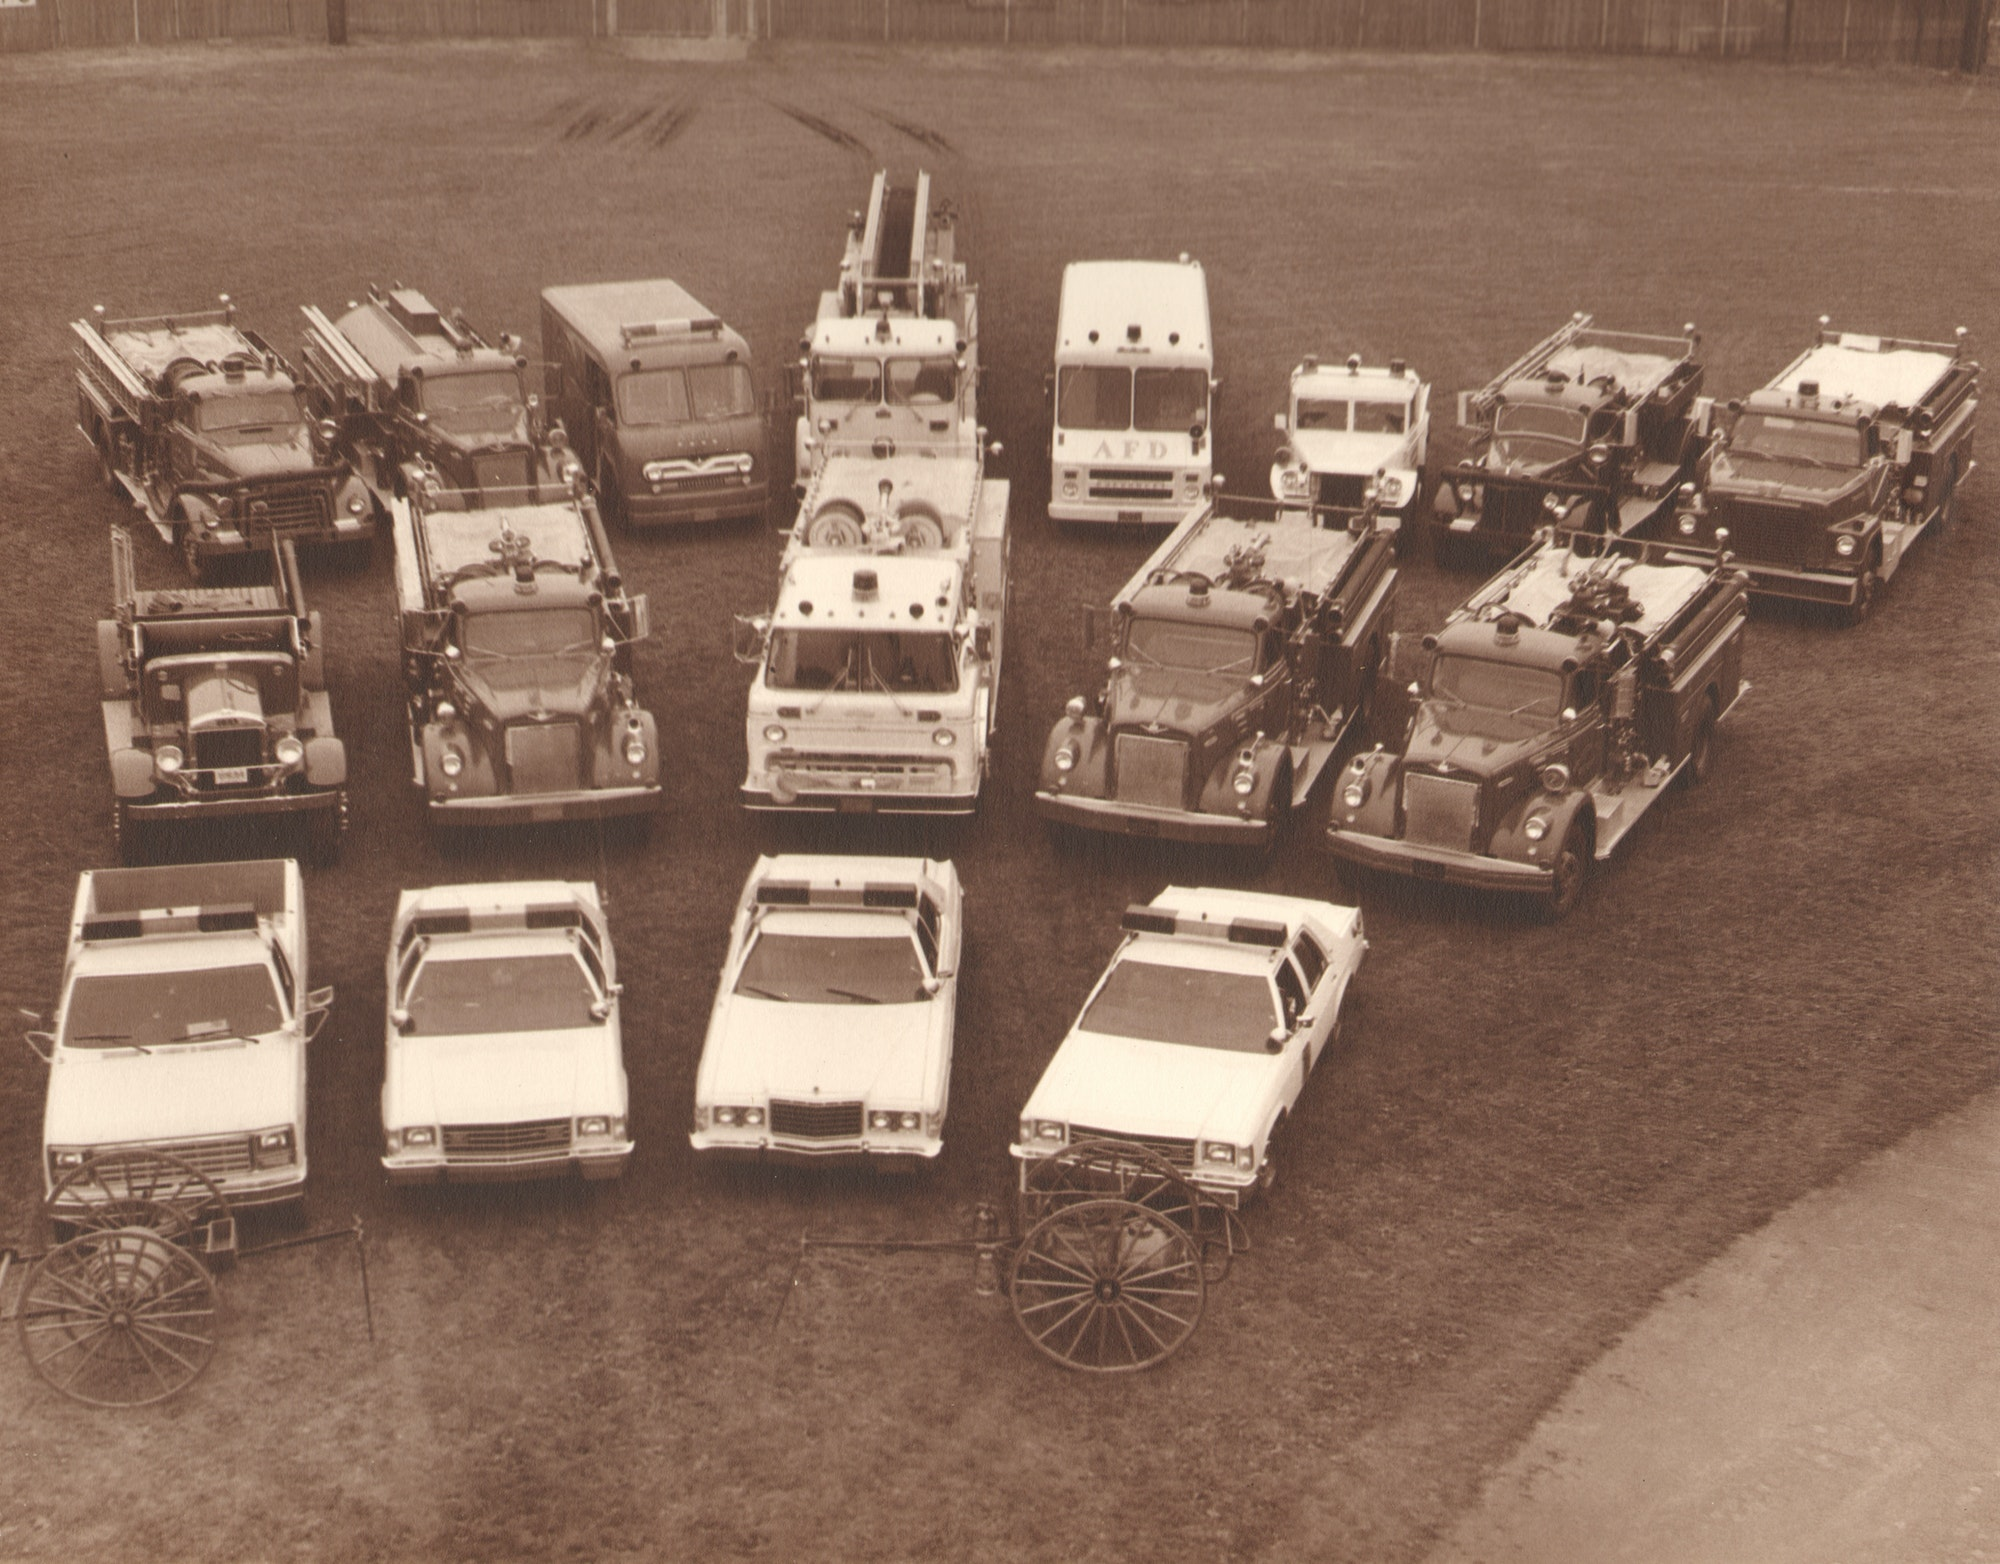 Group photo of fire engines